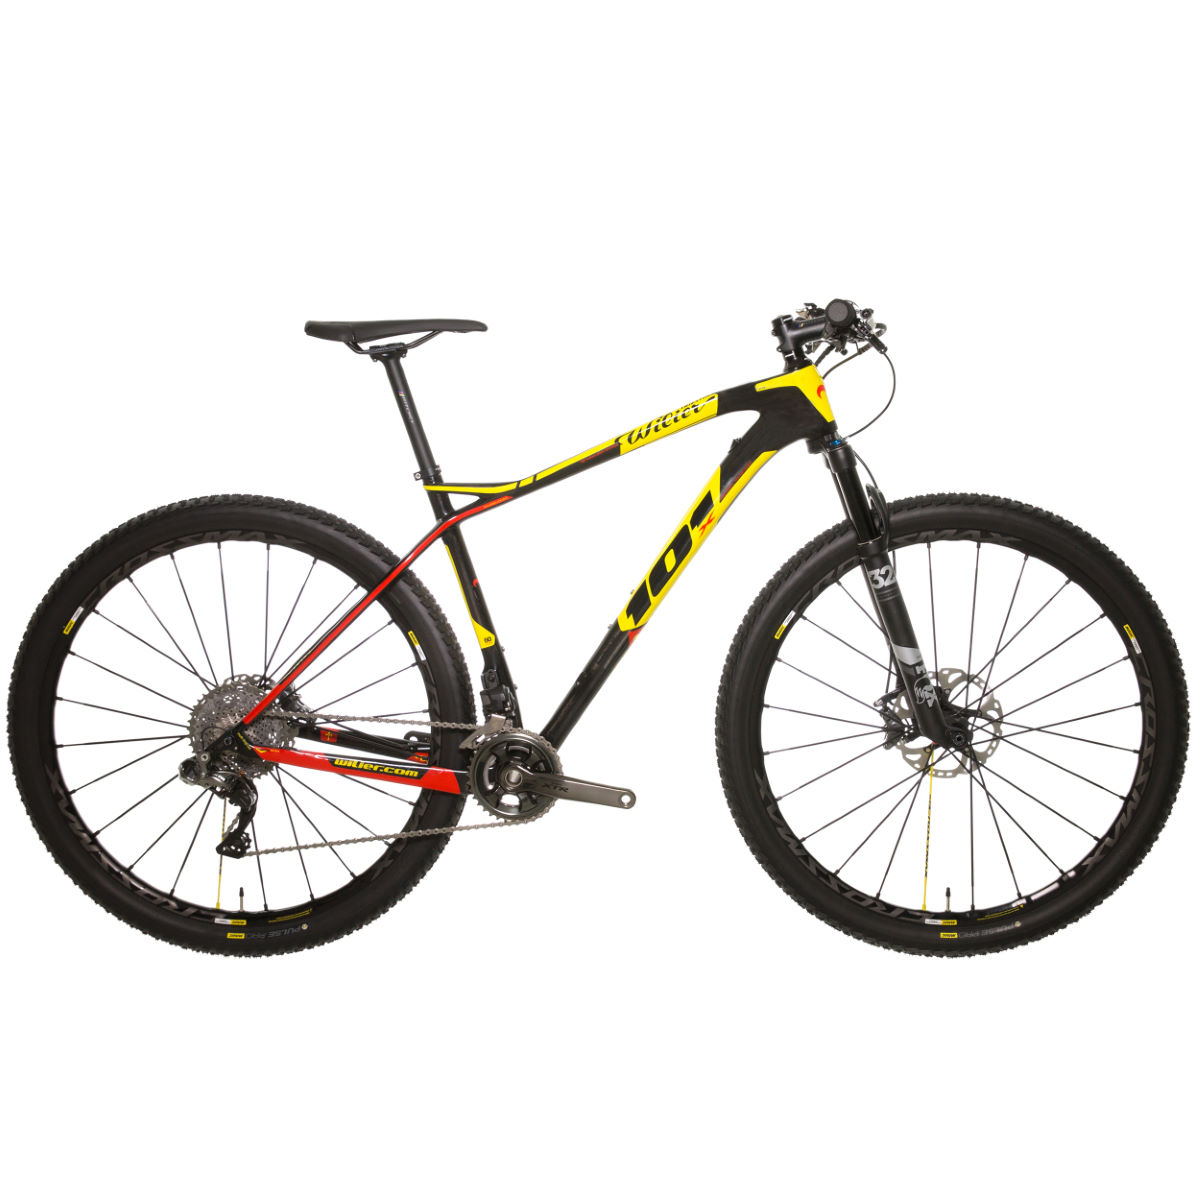 VTT Wilier 101X (XTR Di2, 2018) - S Stock Bike Yellow/Red